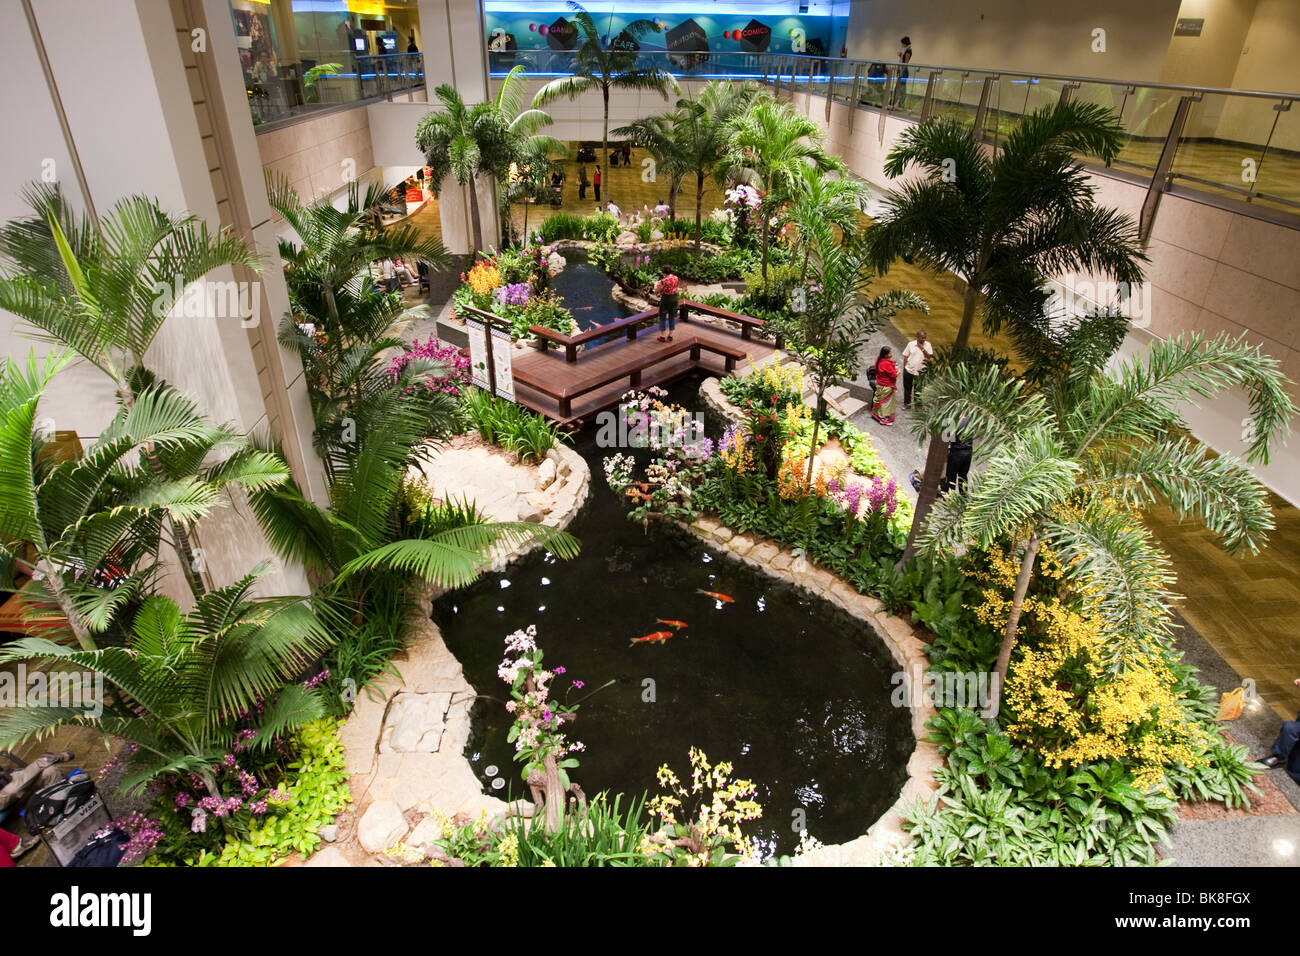 Orchid Garden In Changi Airport, Singapore, Indonesia, Southeast Asia